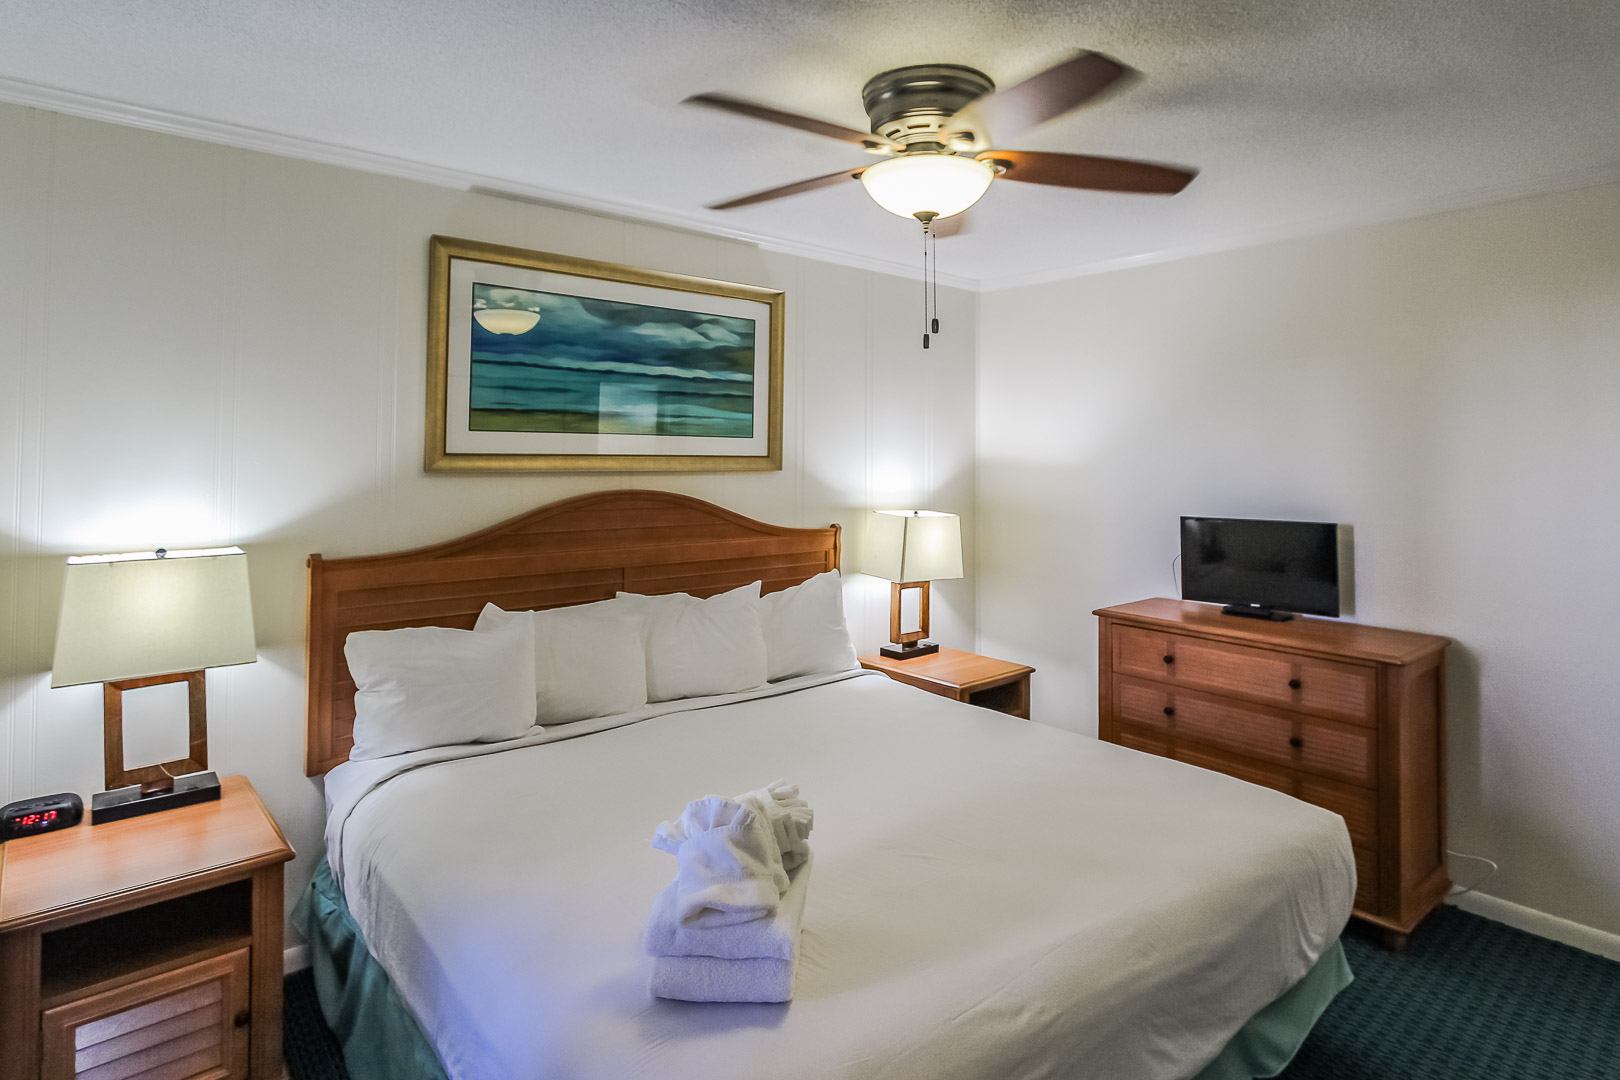 A quaint master bedroom at VRI's A Place at the Beach III in North Carolina